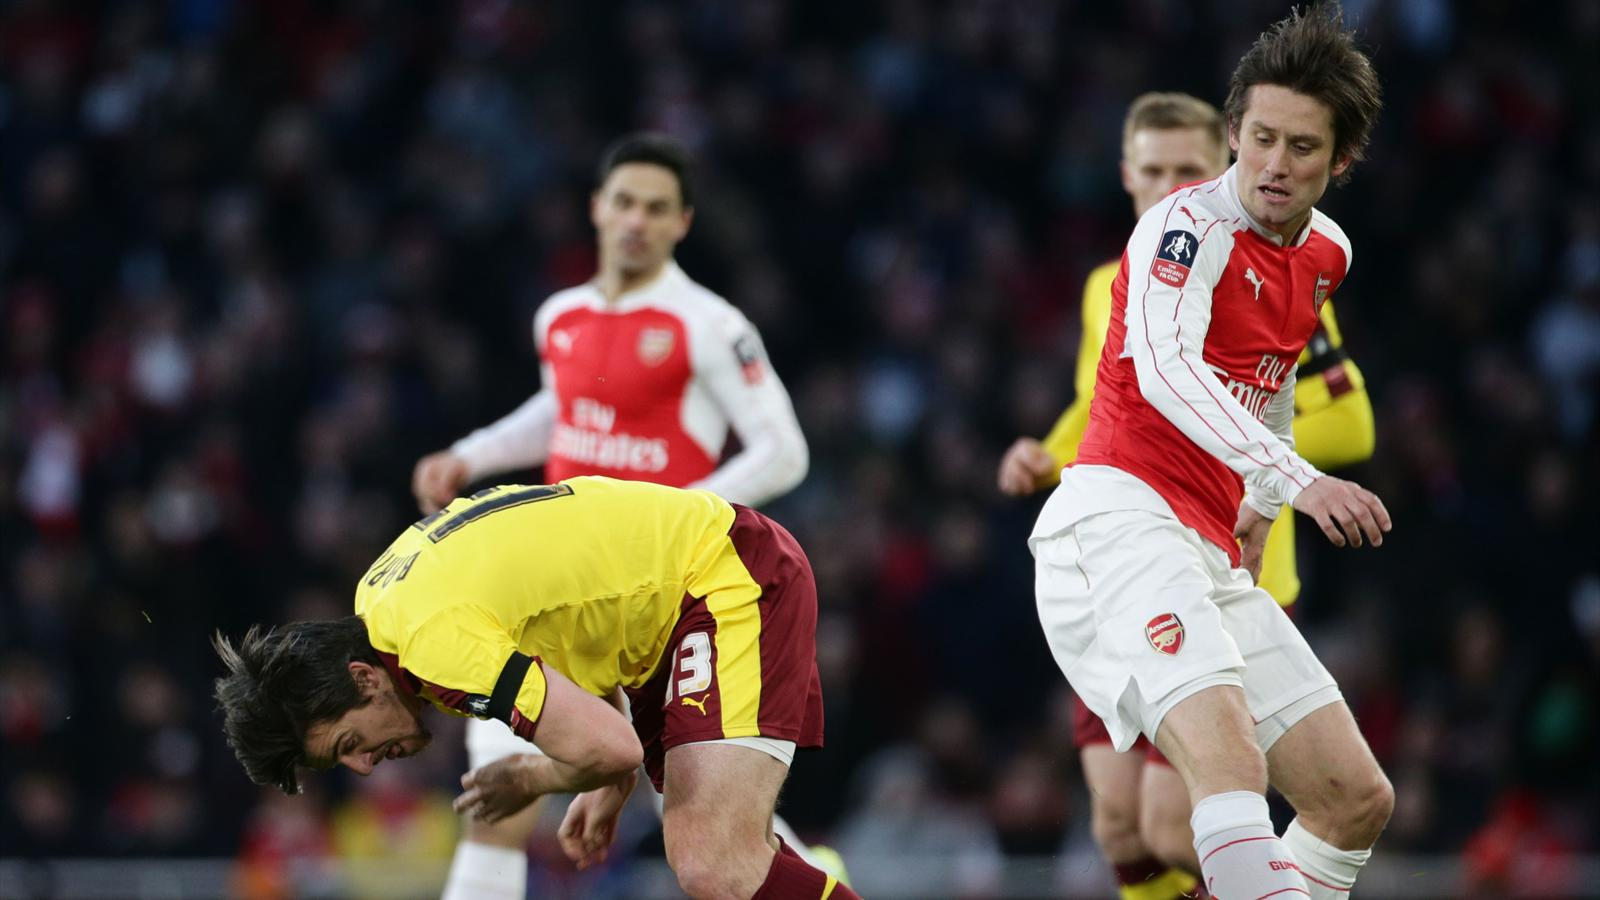 Burnley's Joey Barton (left) and Arsenal's Tomas Rosicky battle for the ball